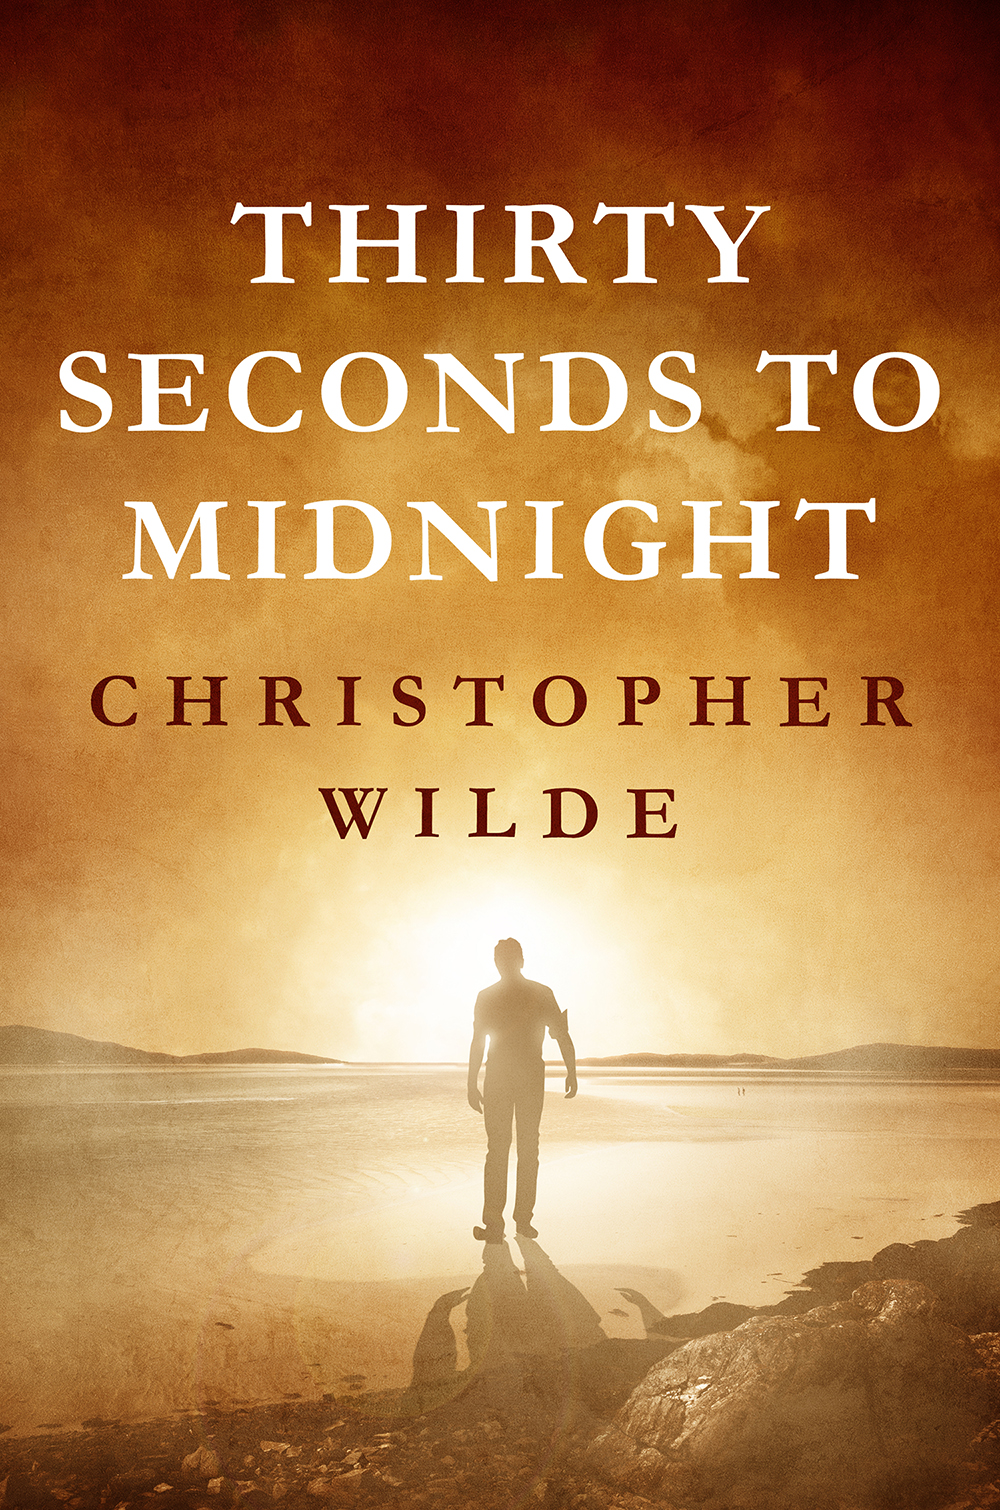 30 Seconds to Midnight (Small)